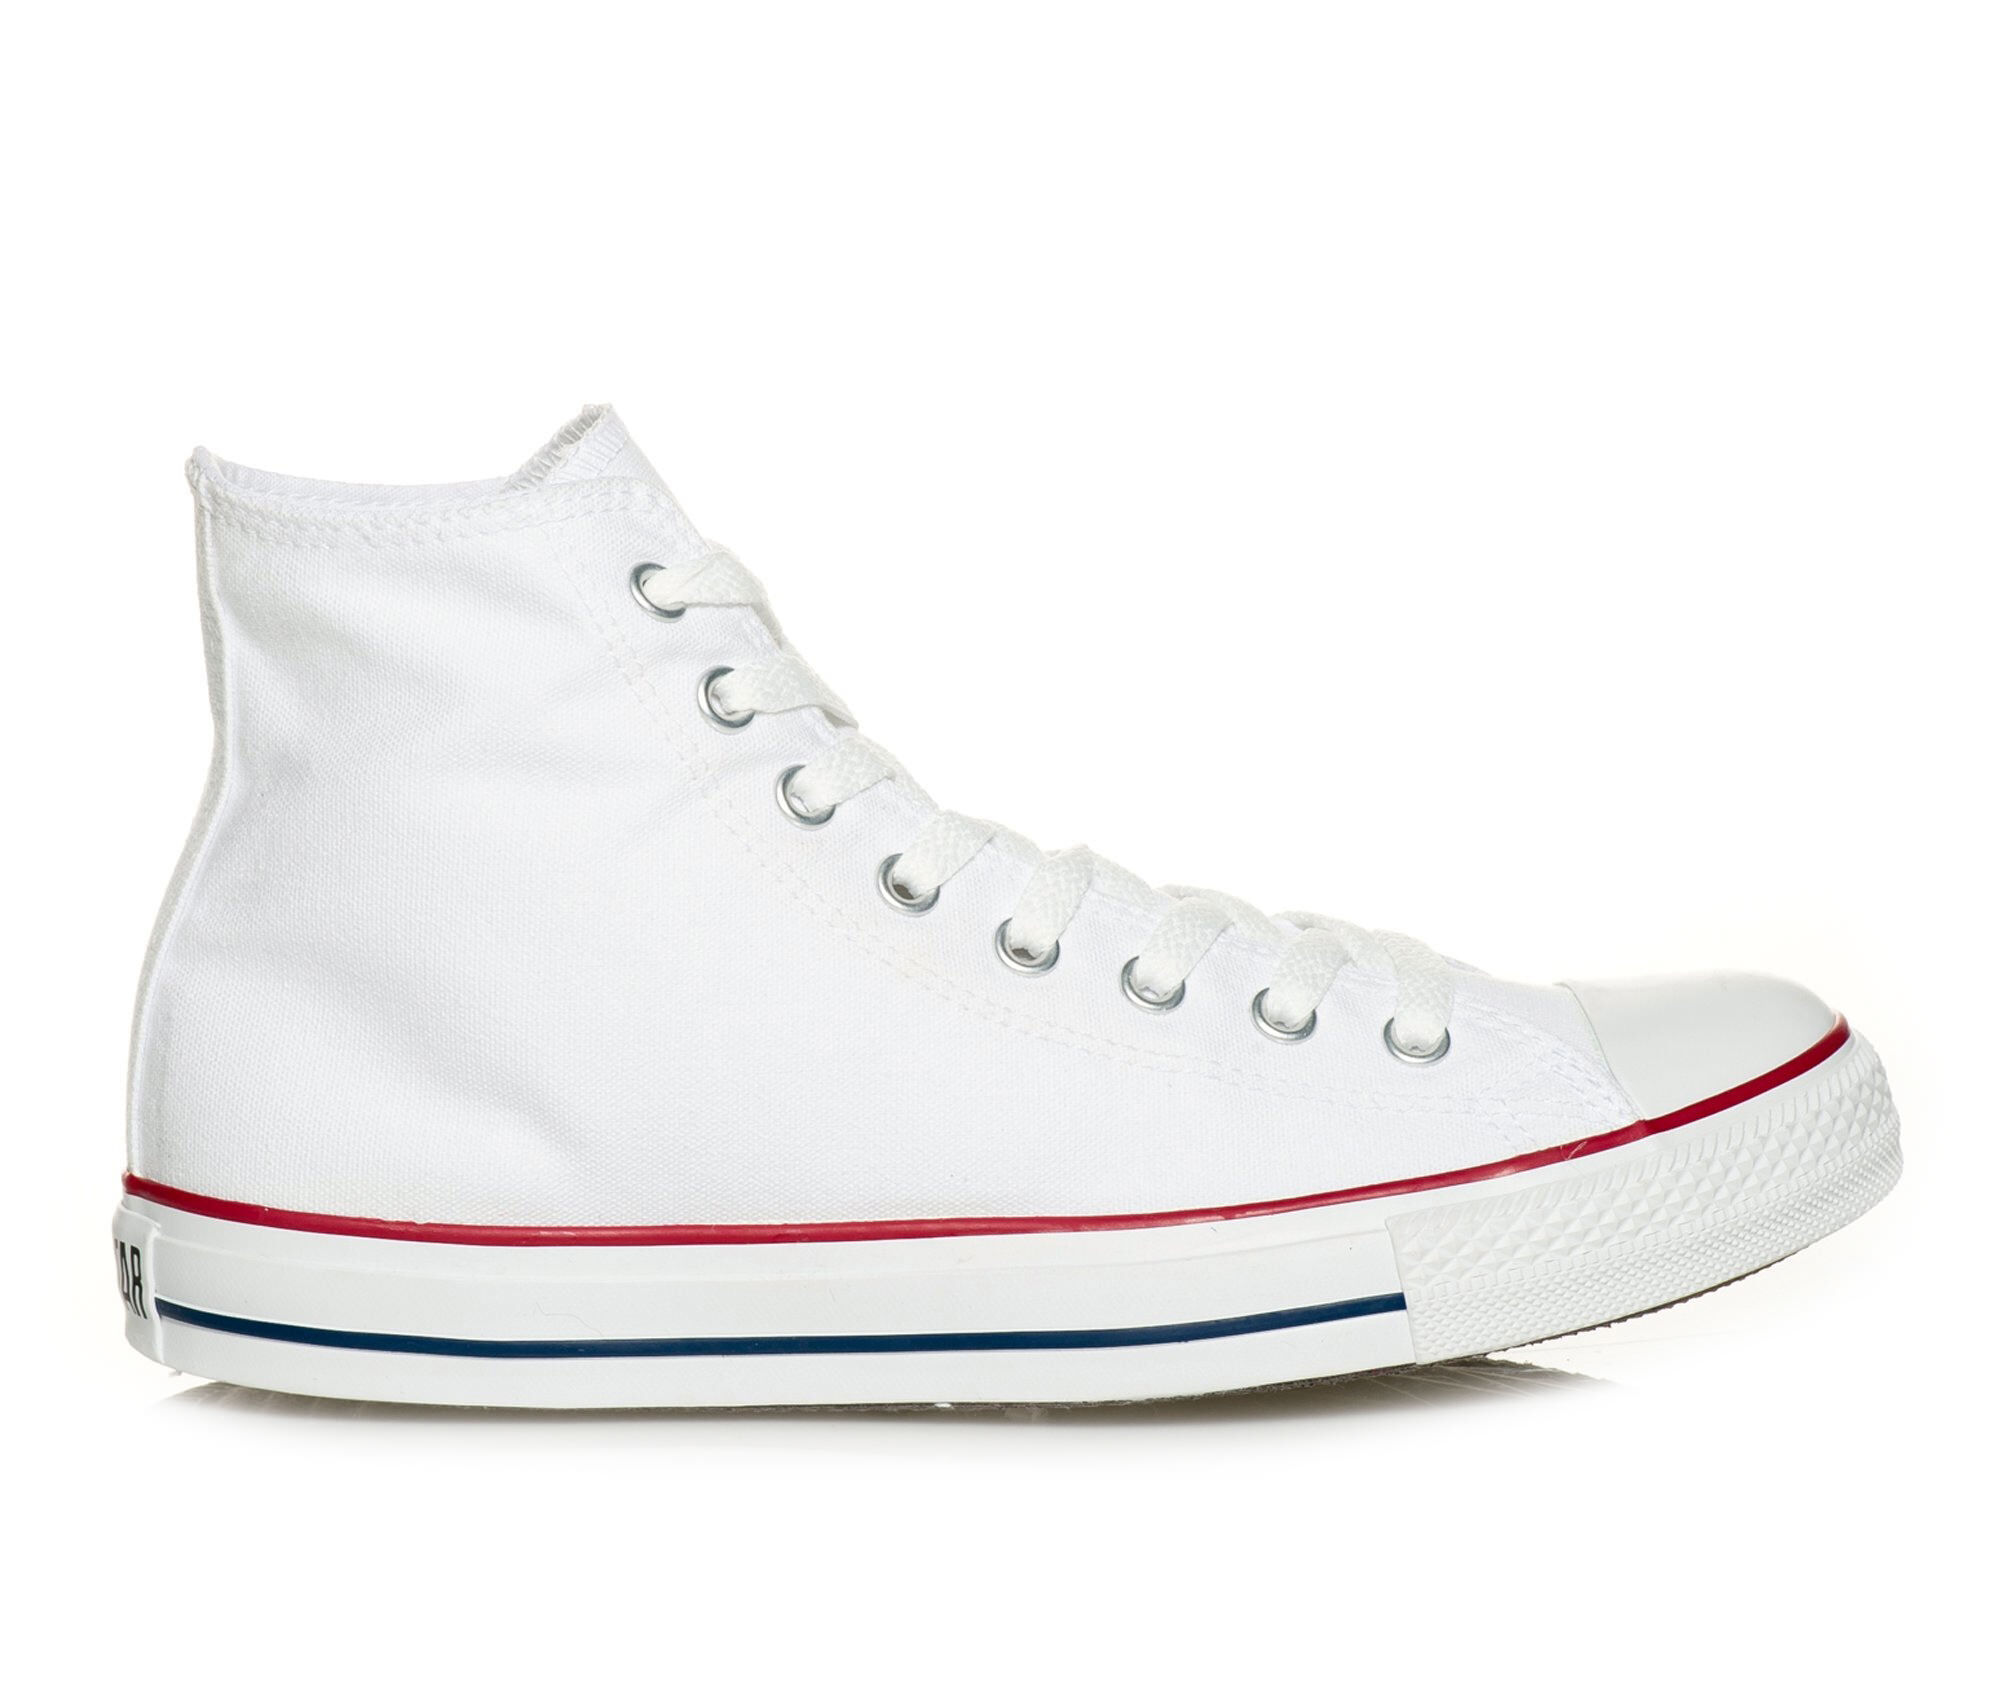 Adults' Converse Chuck Taylor All Star Canvas Hi High Top Sneakers Opt White